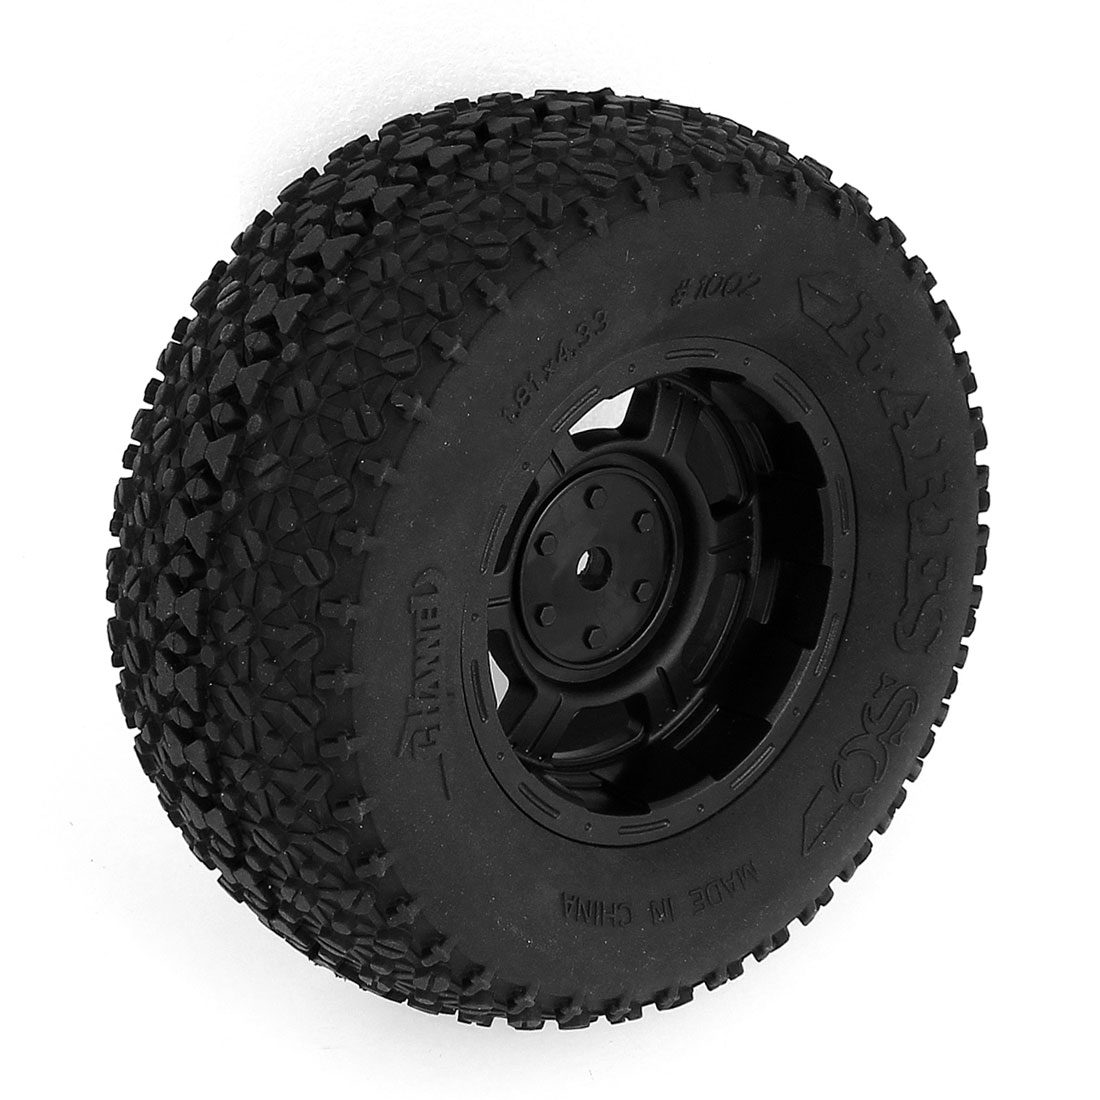 Black Rubber 1/10 RC Truck Short Course Wheel Rim Tyre for VKAR A10 Traxxas Slash